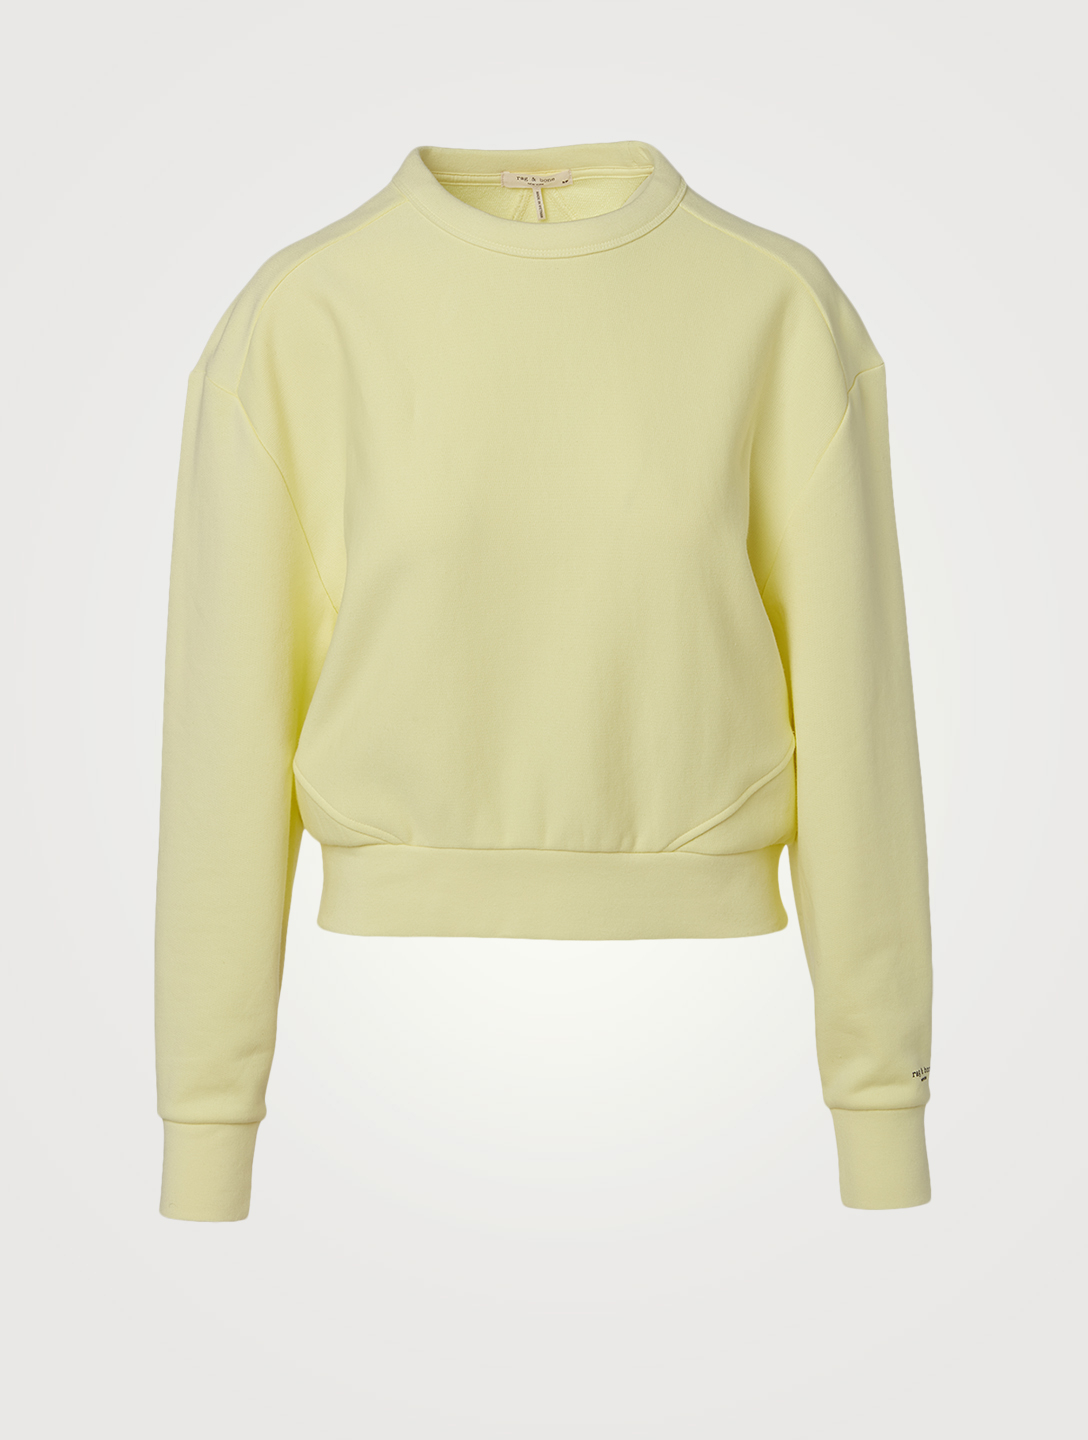 RAG & BONE City Terry Sweatshirt Women's Green